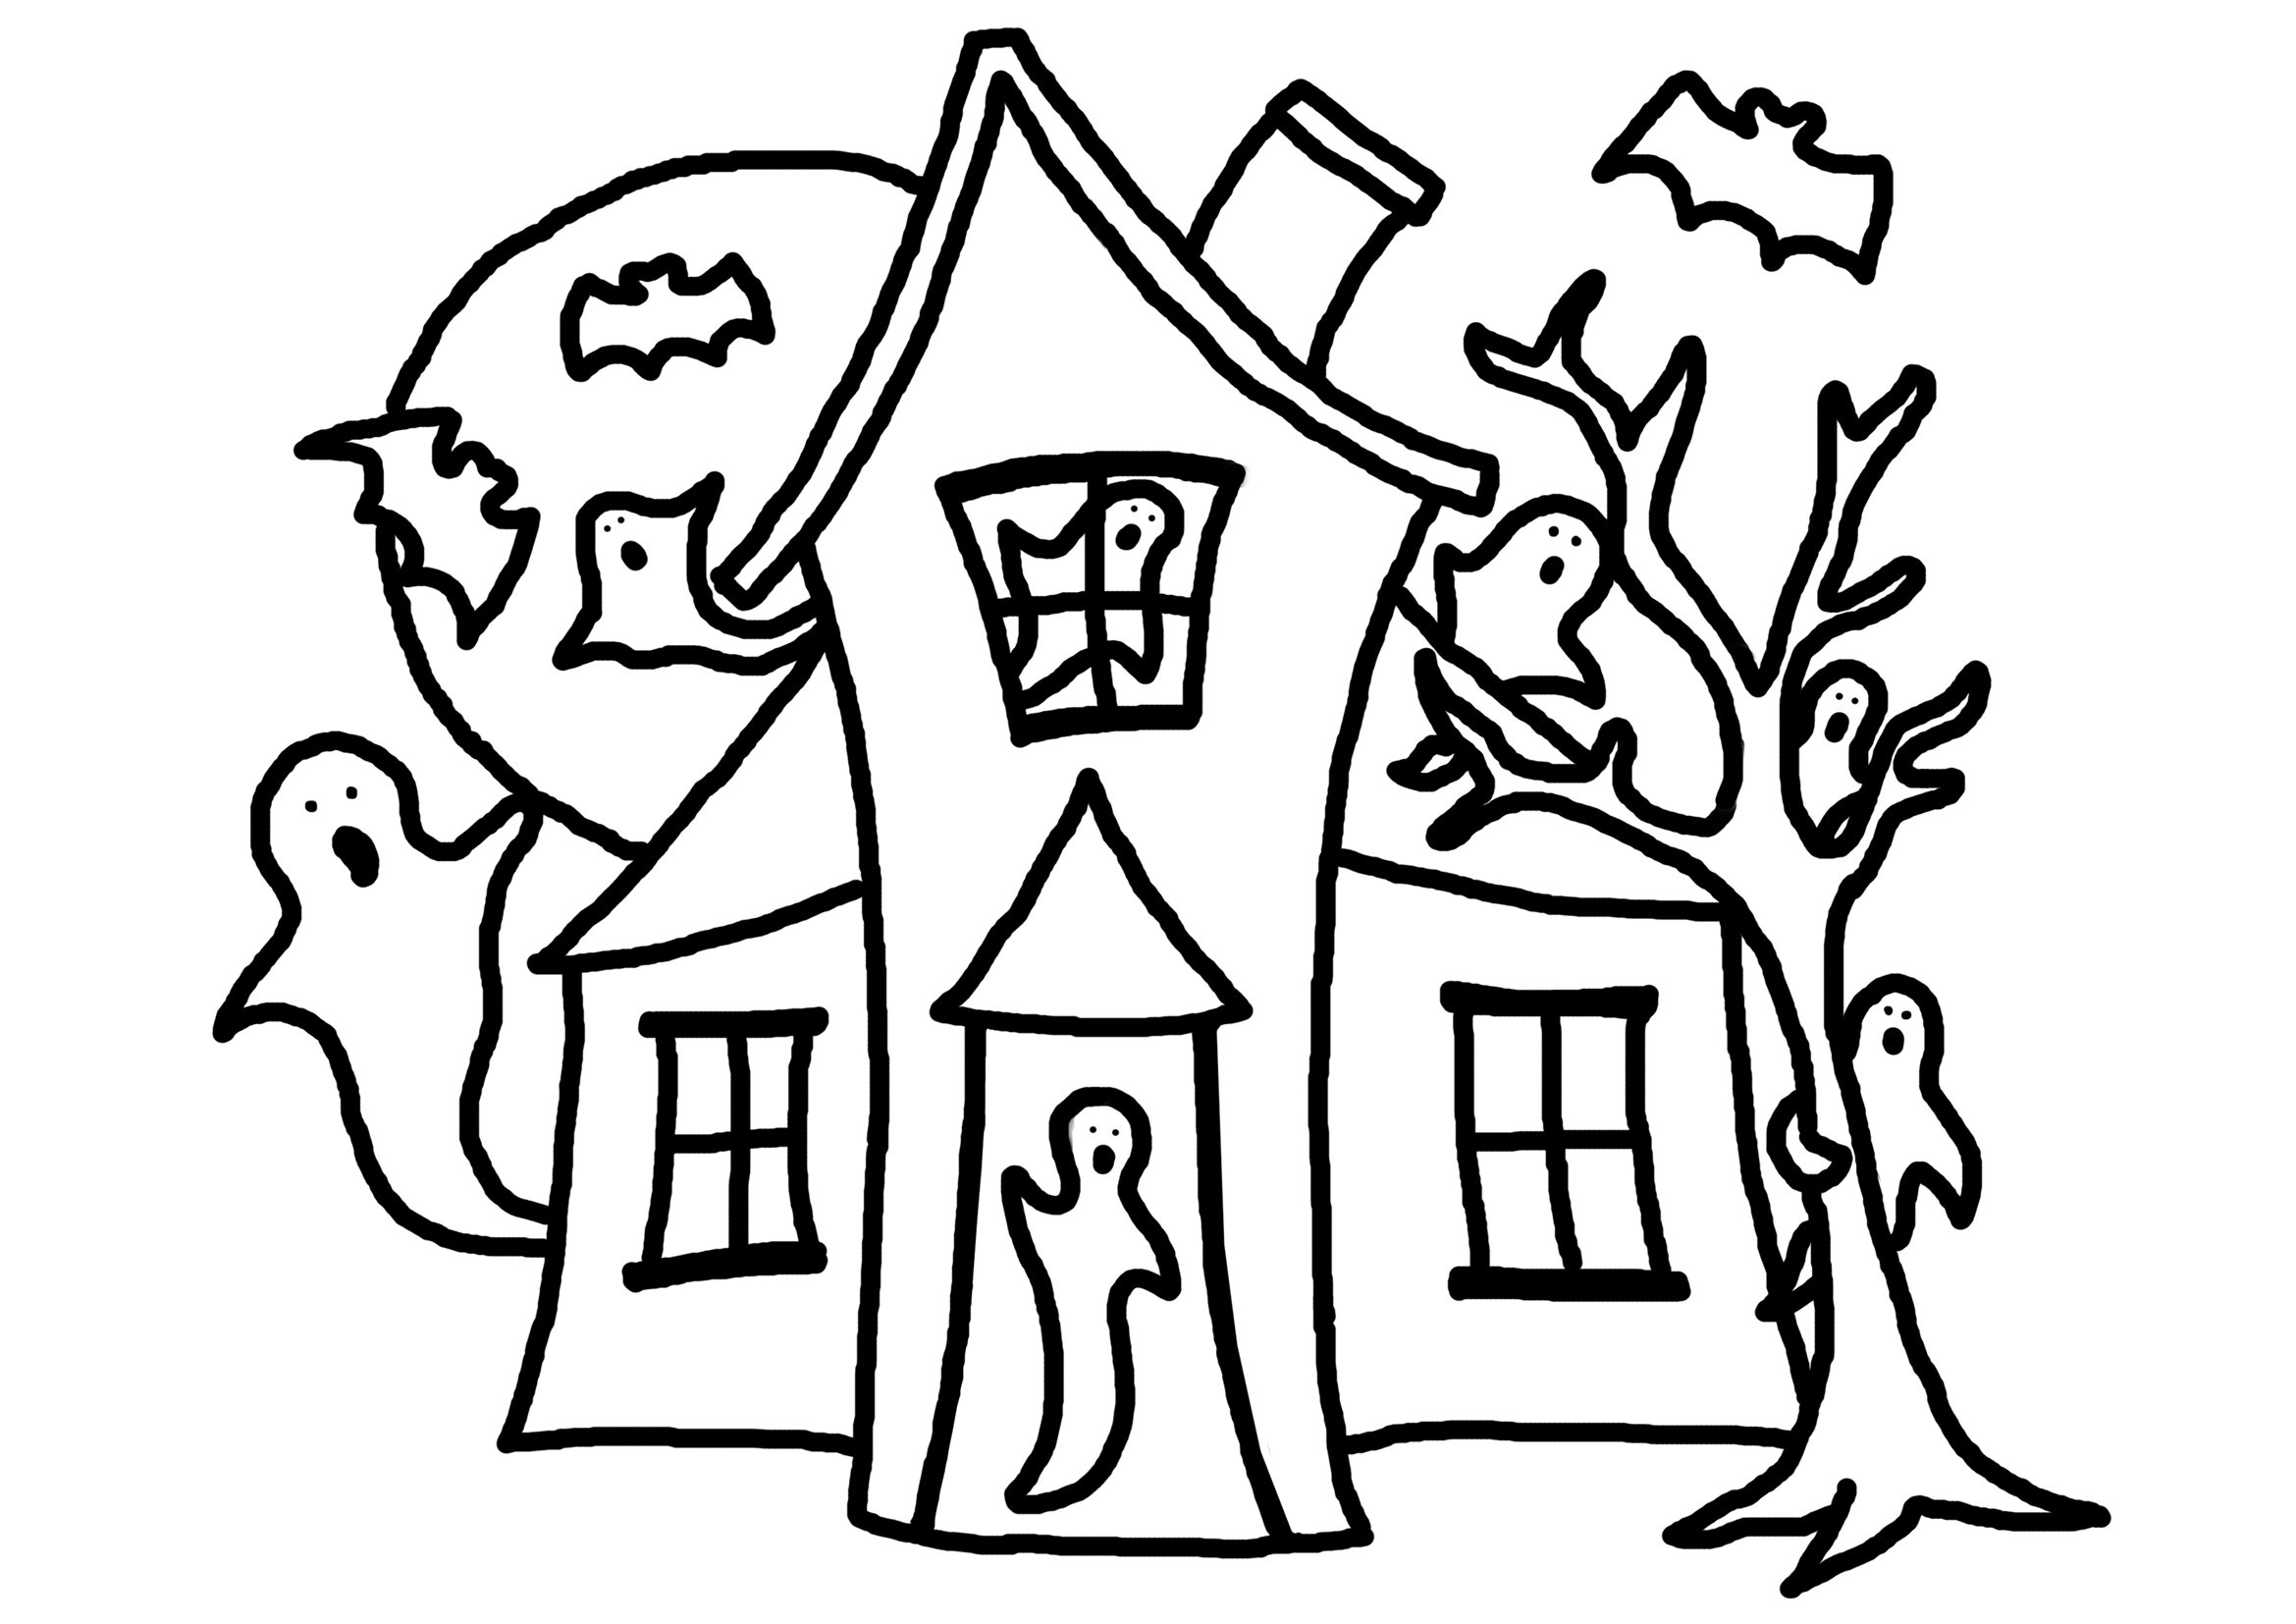 haunted house coloring 25 free printable haunted house coloring pages for kids haunted house coloring